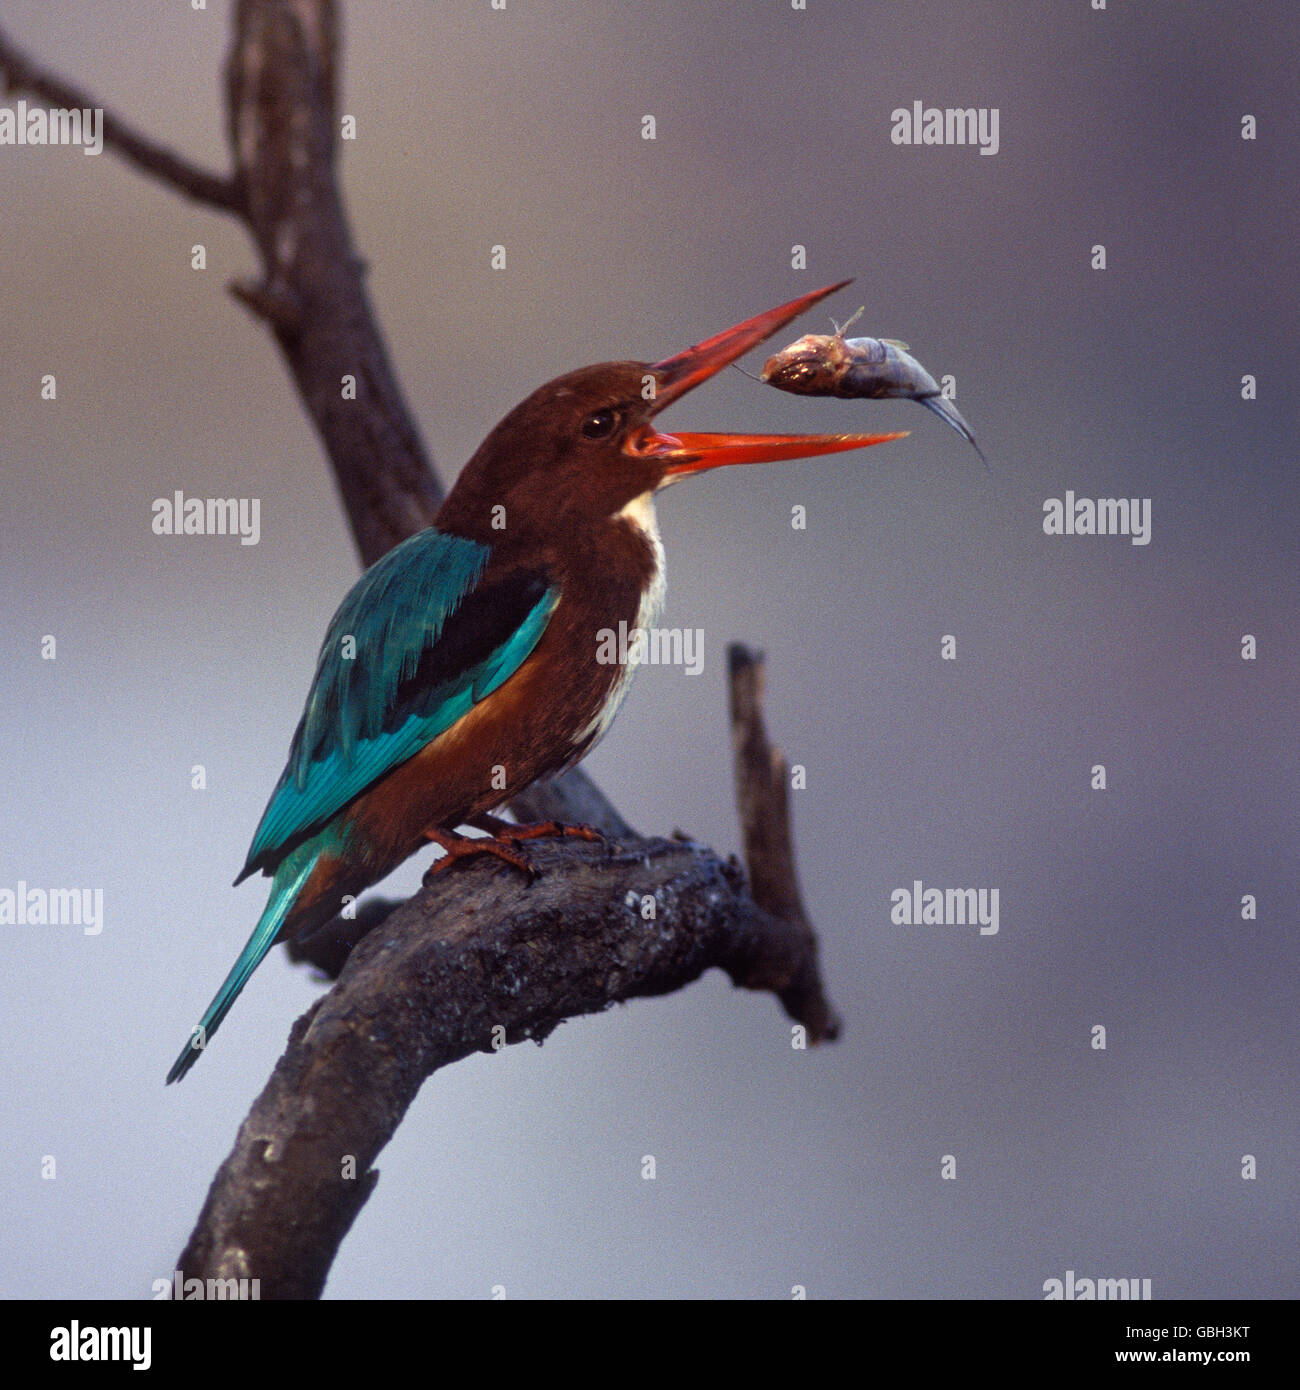 The image of White throated Kingfisher (  Halcyon smyrnensis) tossing fish, Bharatpur, India - Stock Image